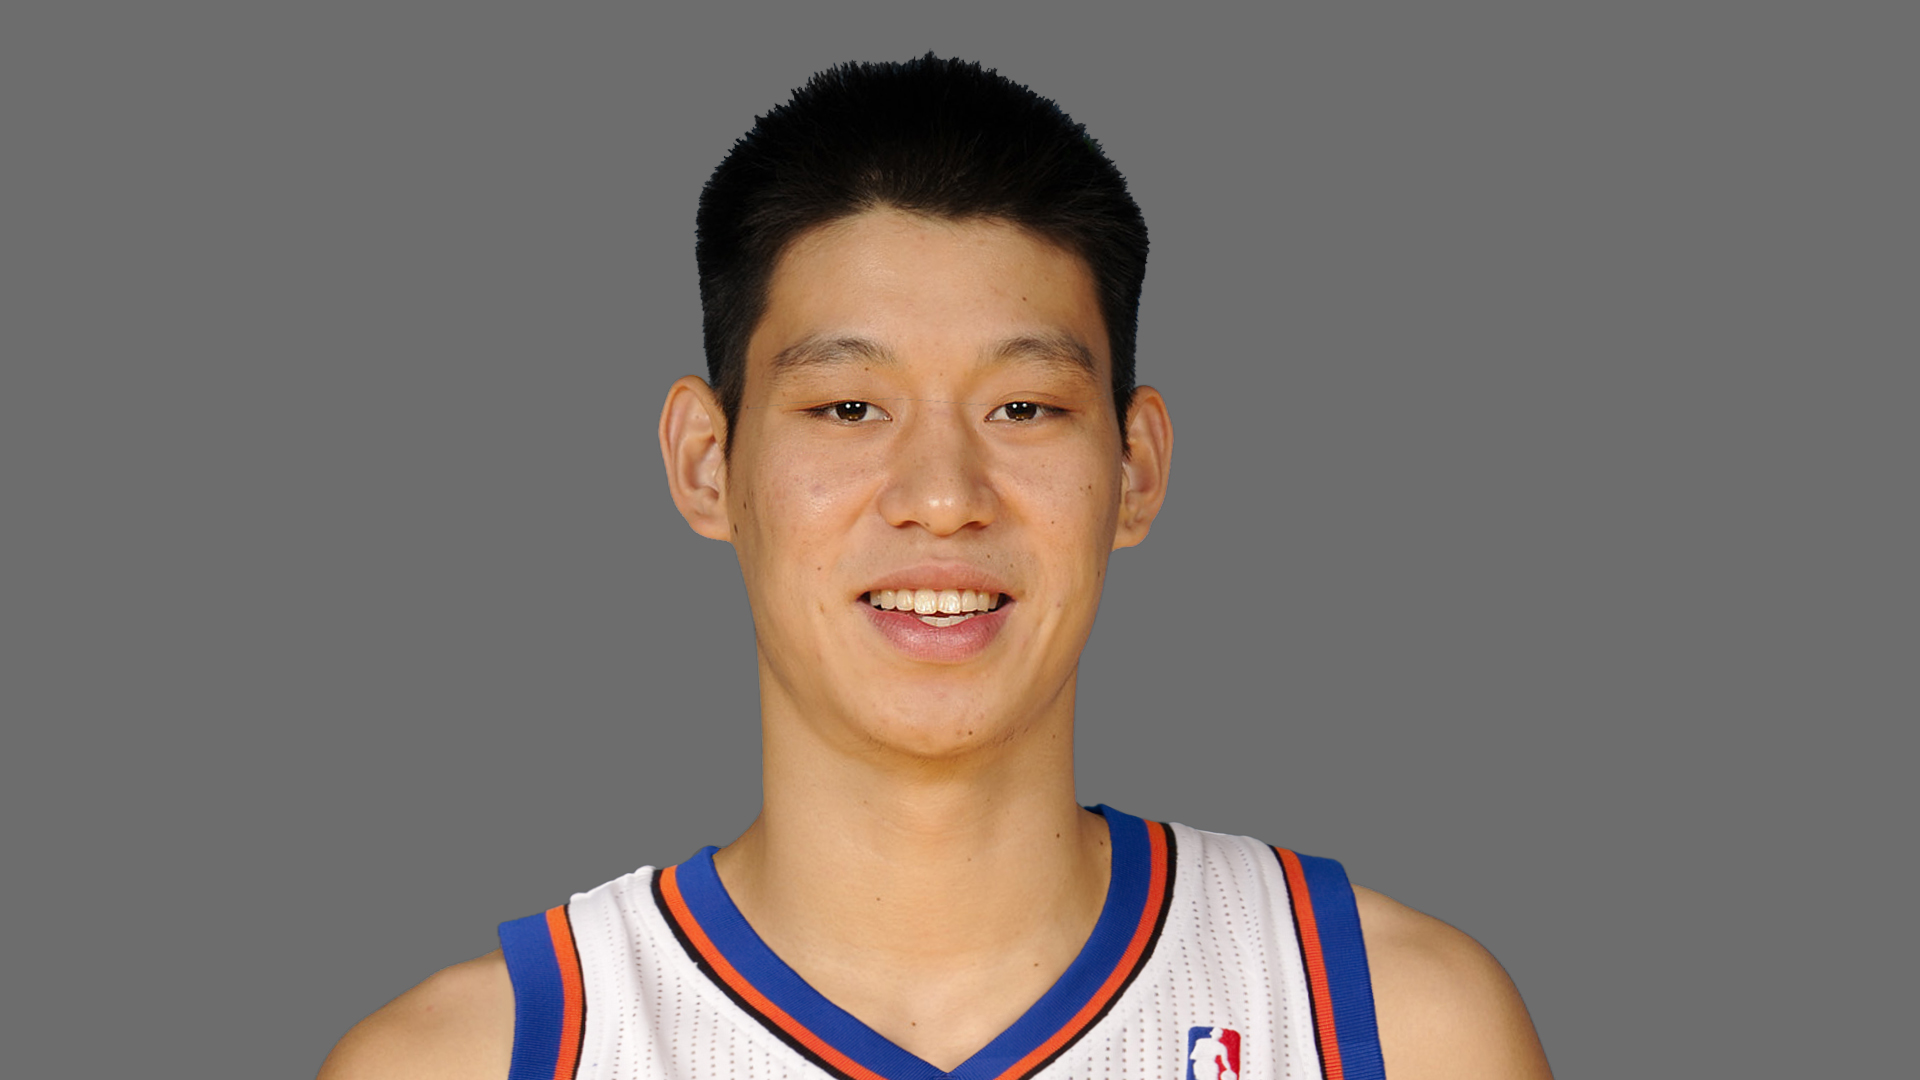 Jeremy Lin: Honorary African-American or Outsider?